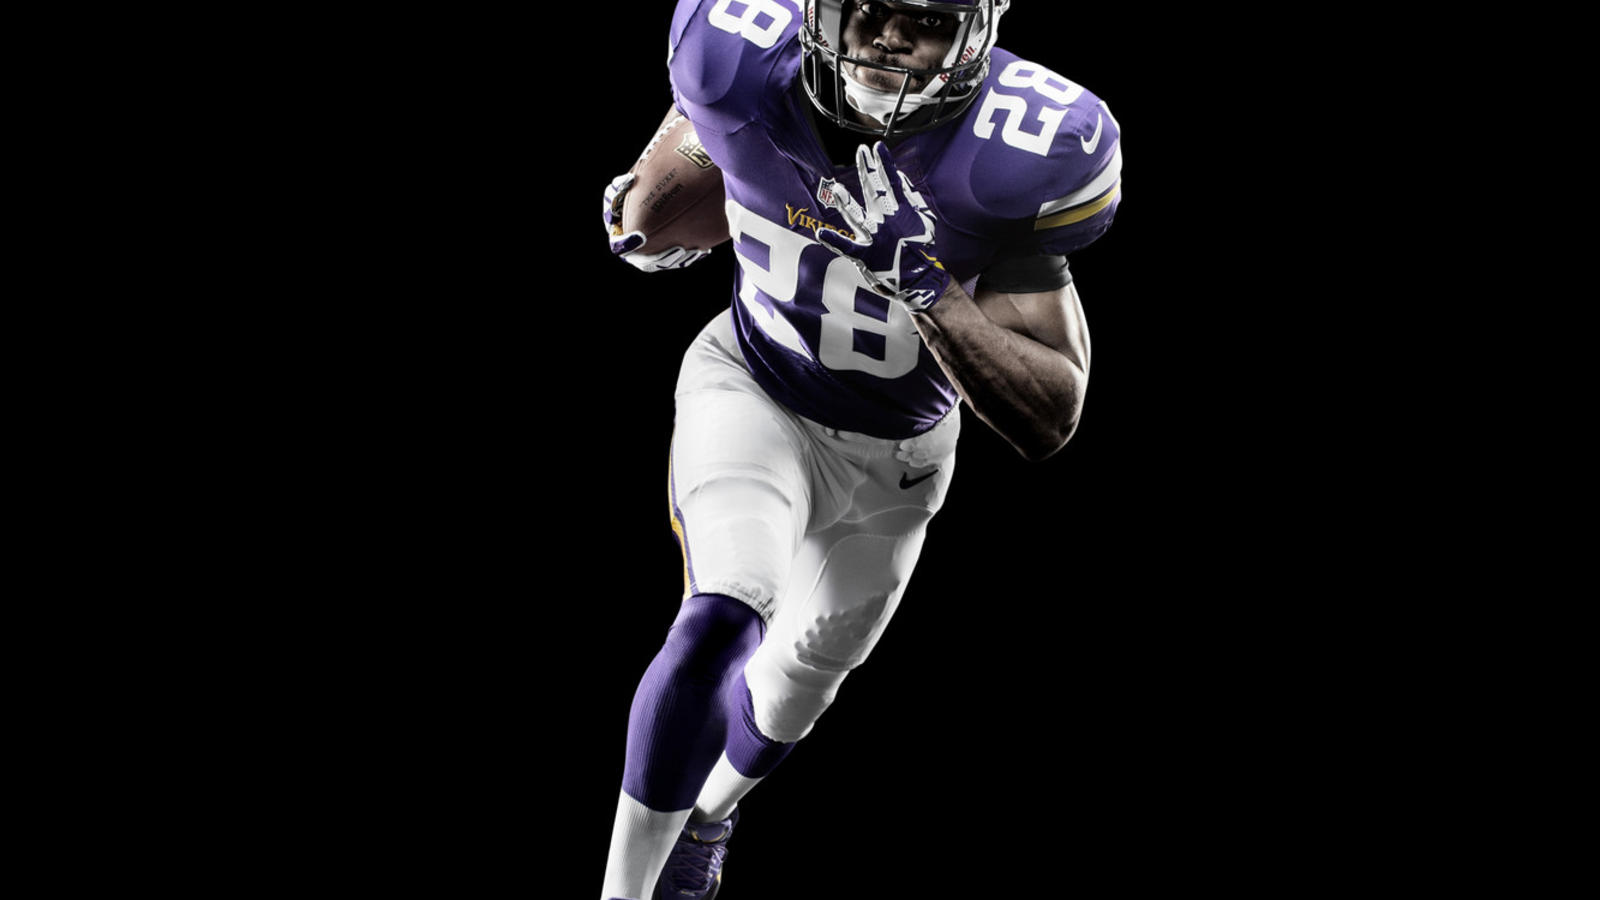 peterson-vikings-nfl-nike-elite-51-uniform-action